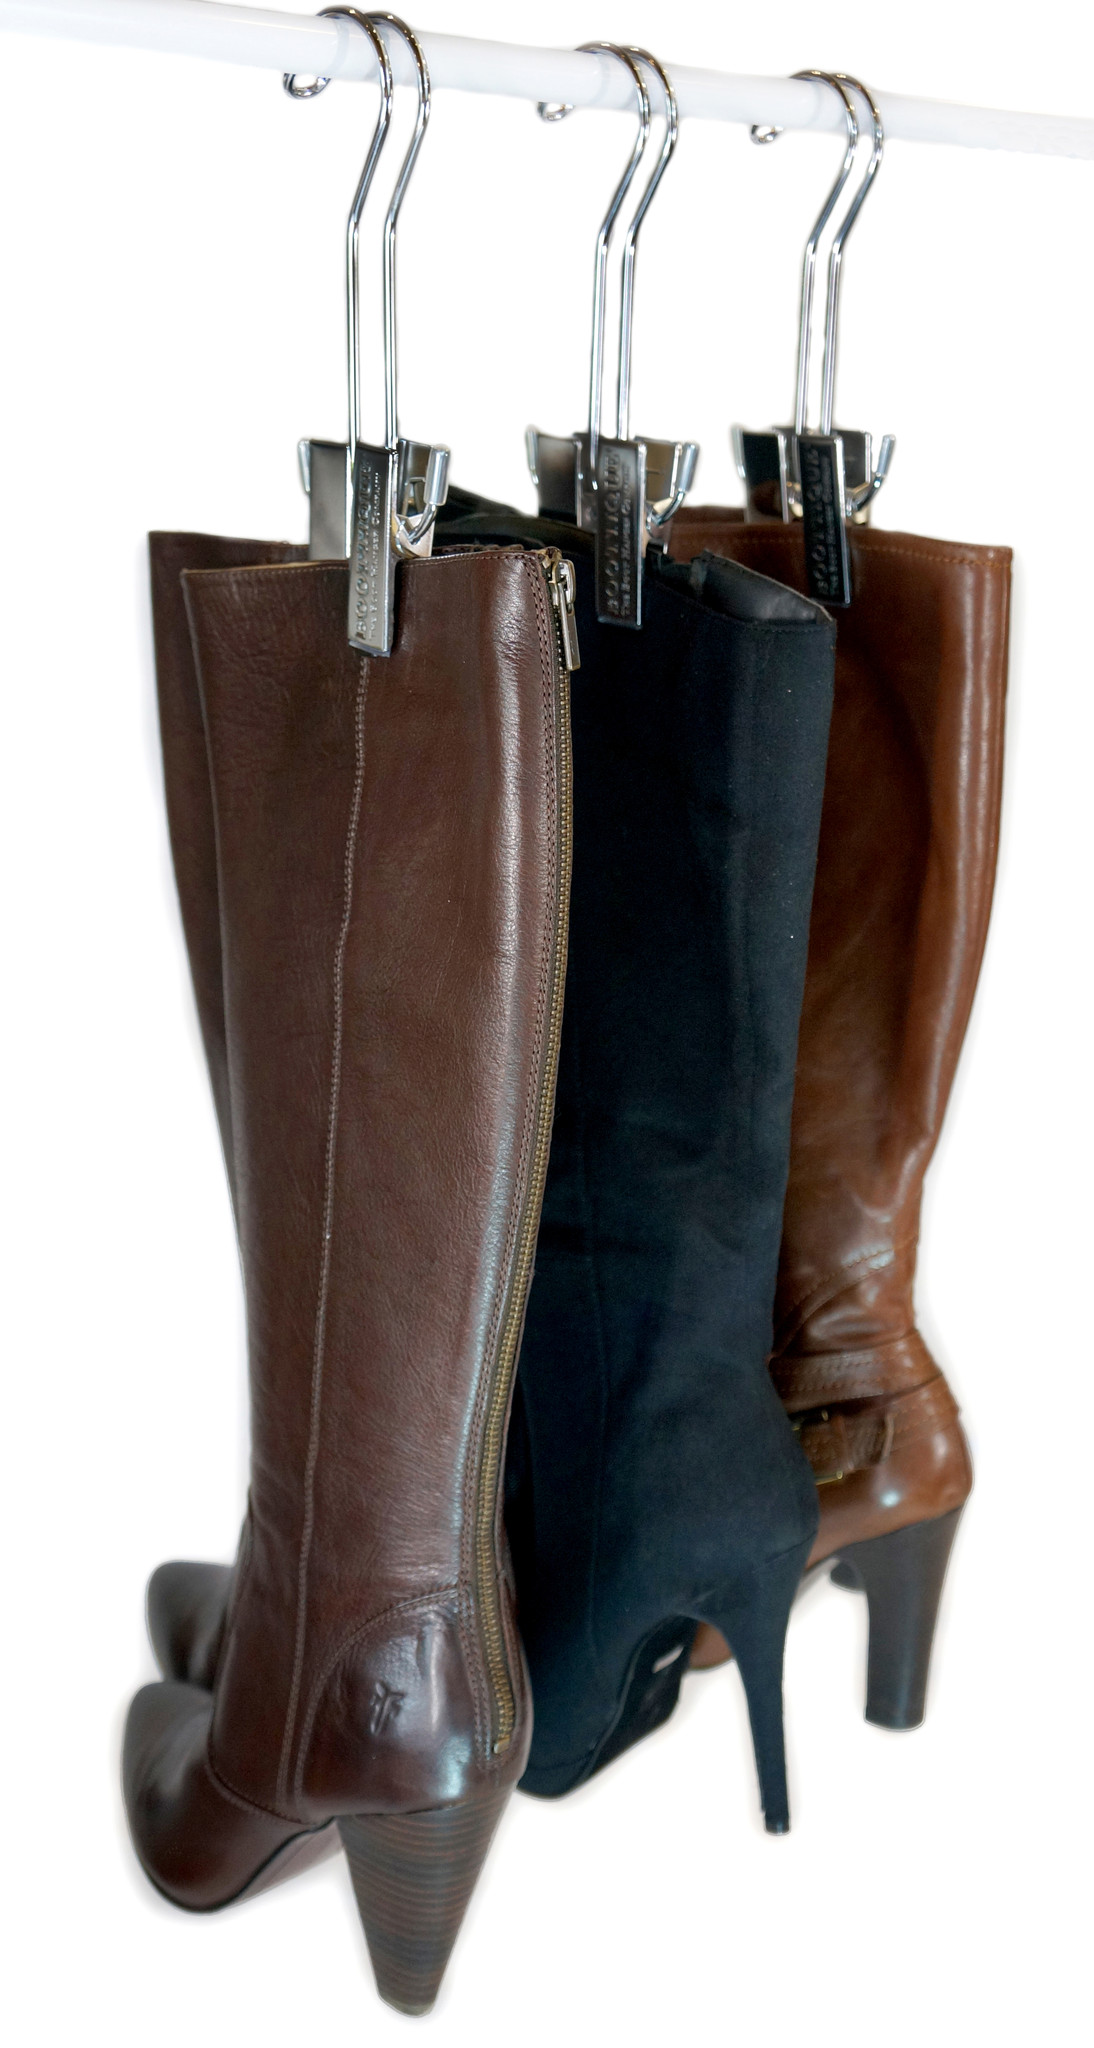 3 silver Bootique Boot Hangers are organizing 2 brown boots and 1 black boot on a closet rod.